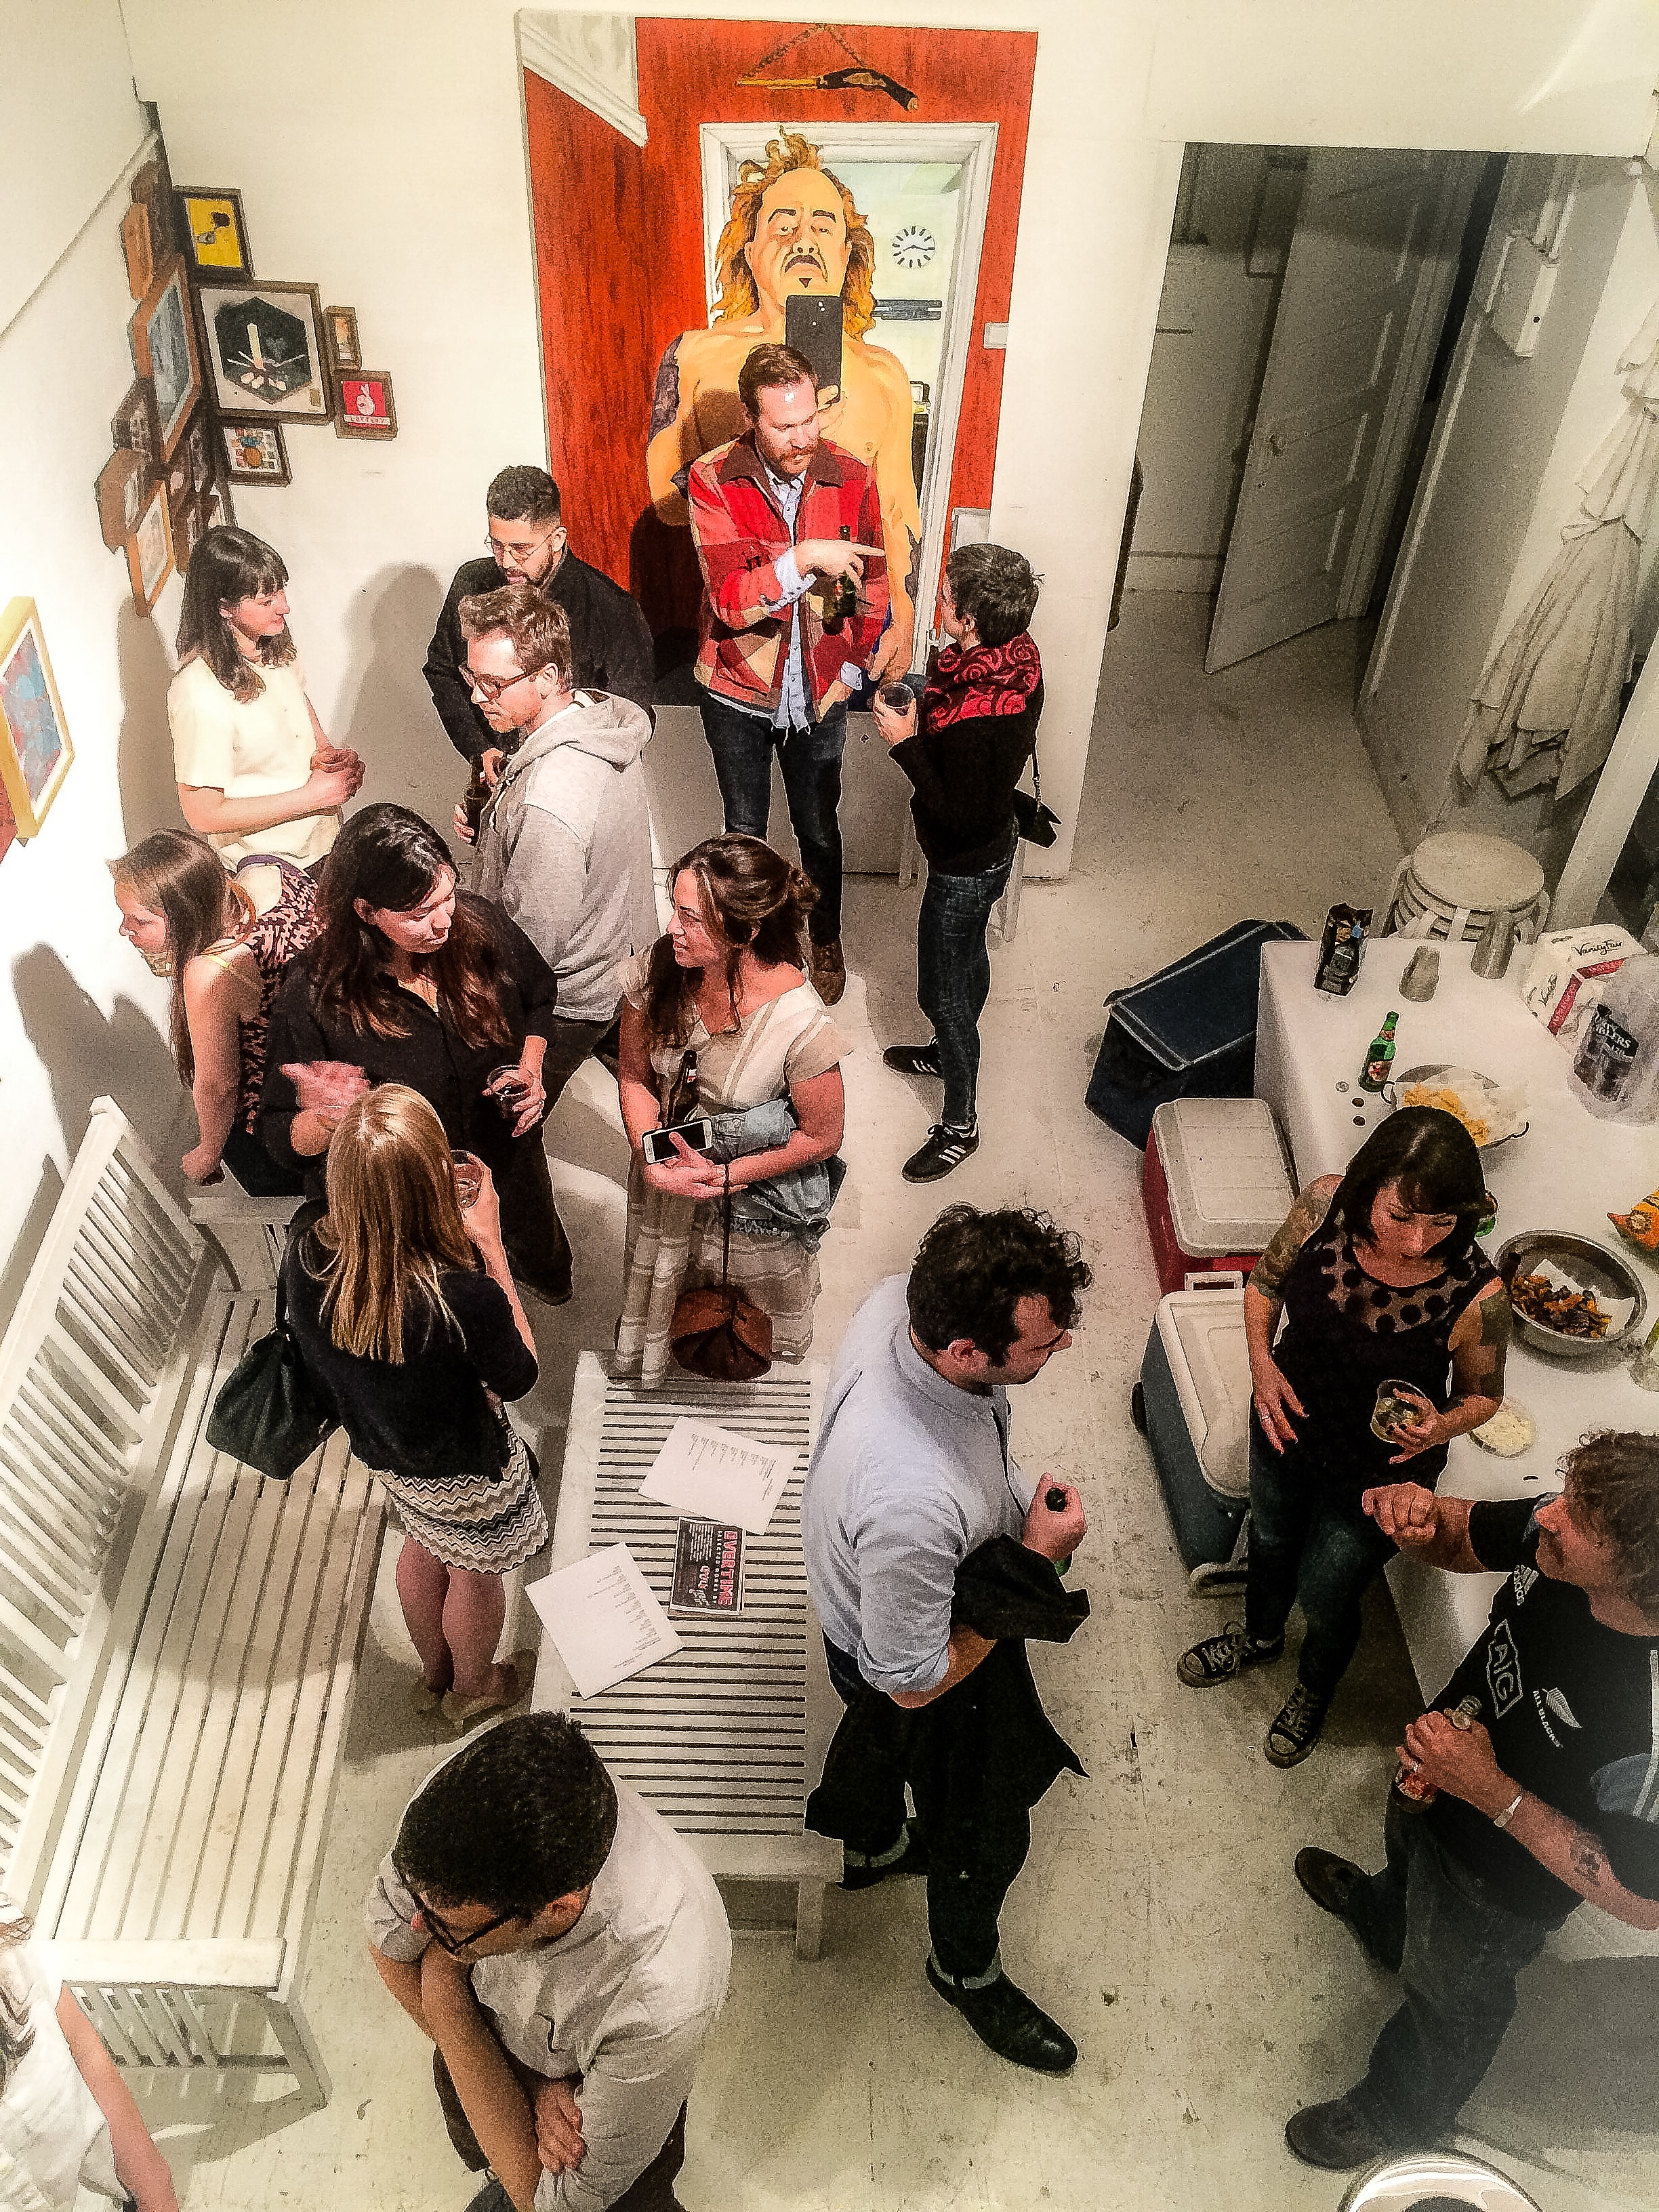 Event at galleryGOMEZ